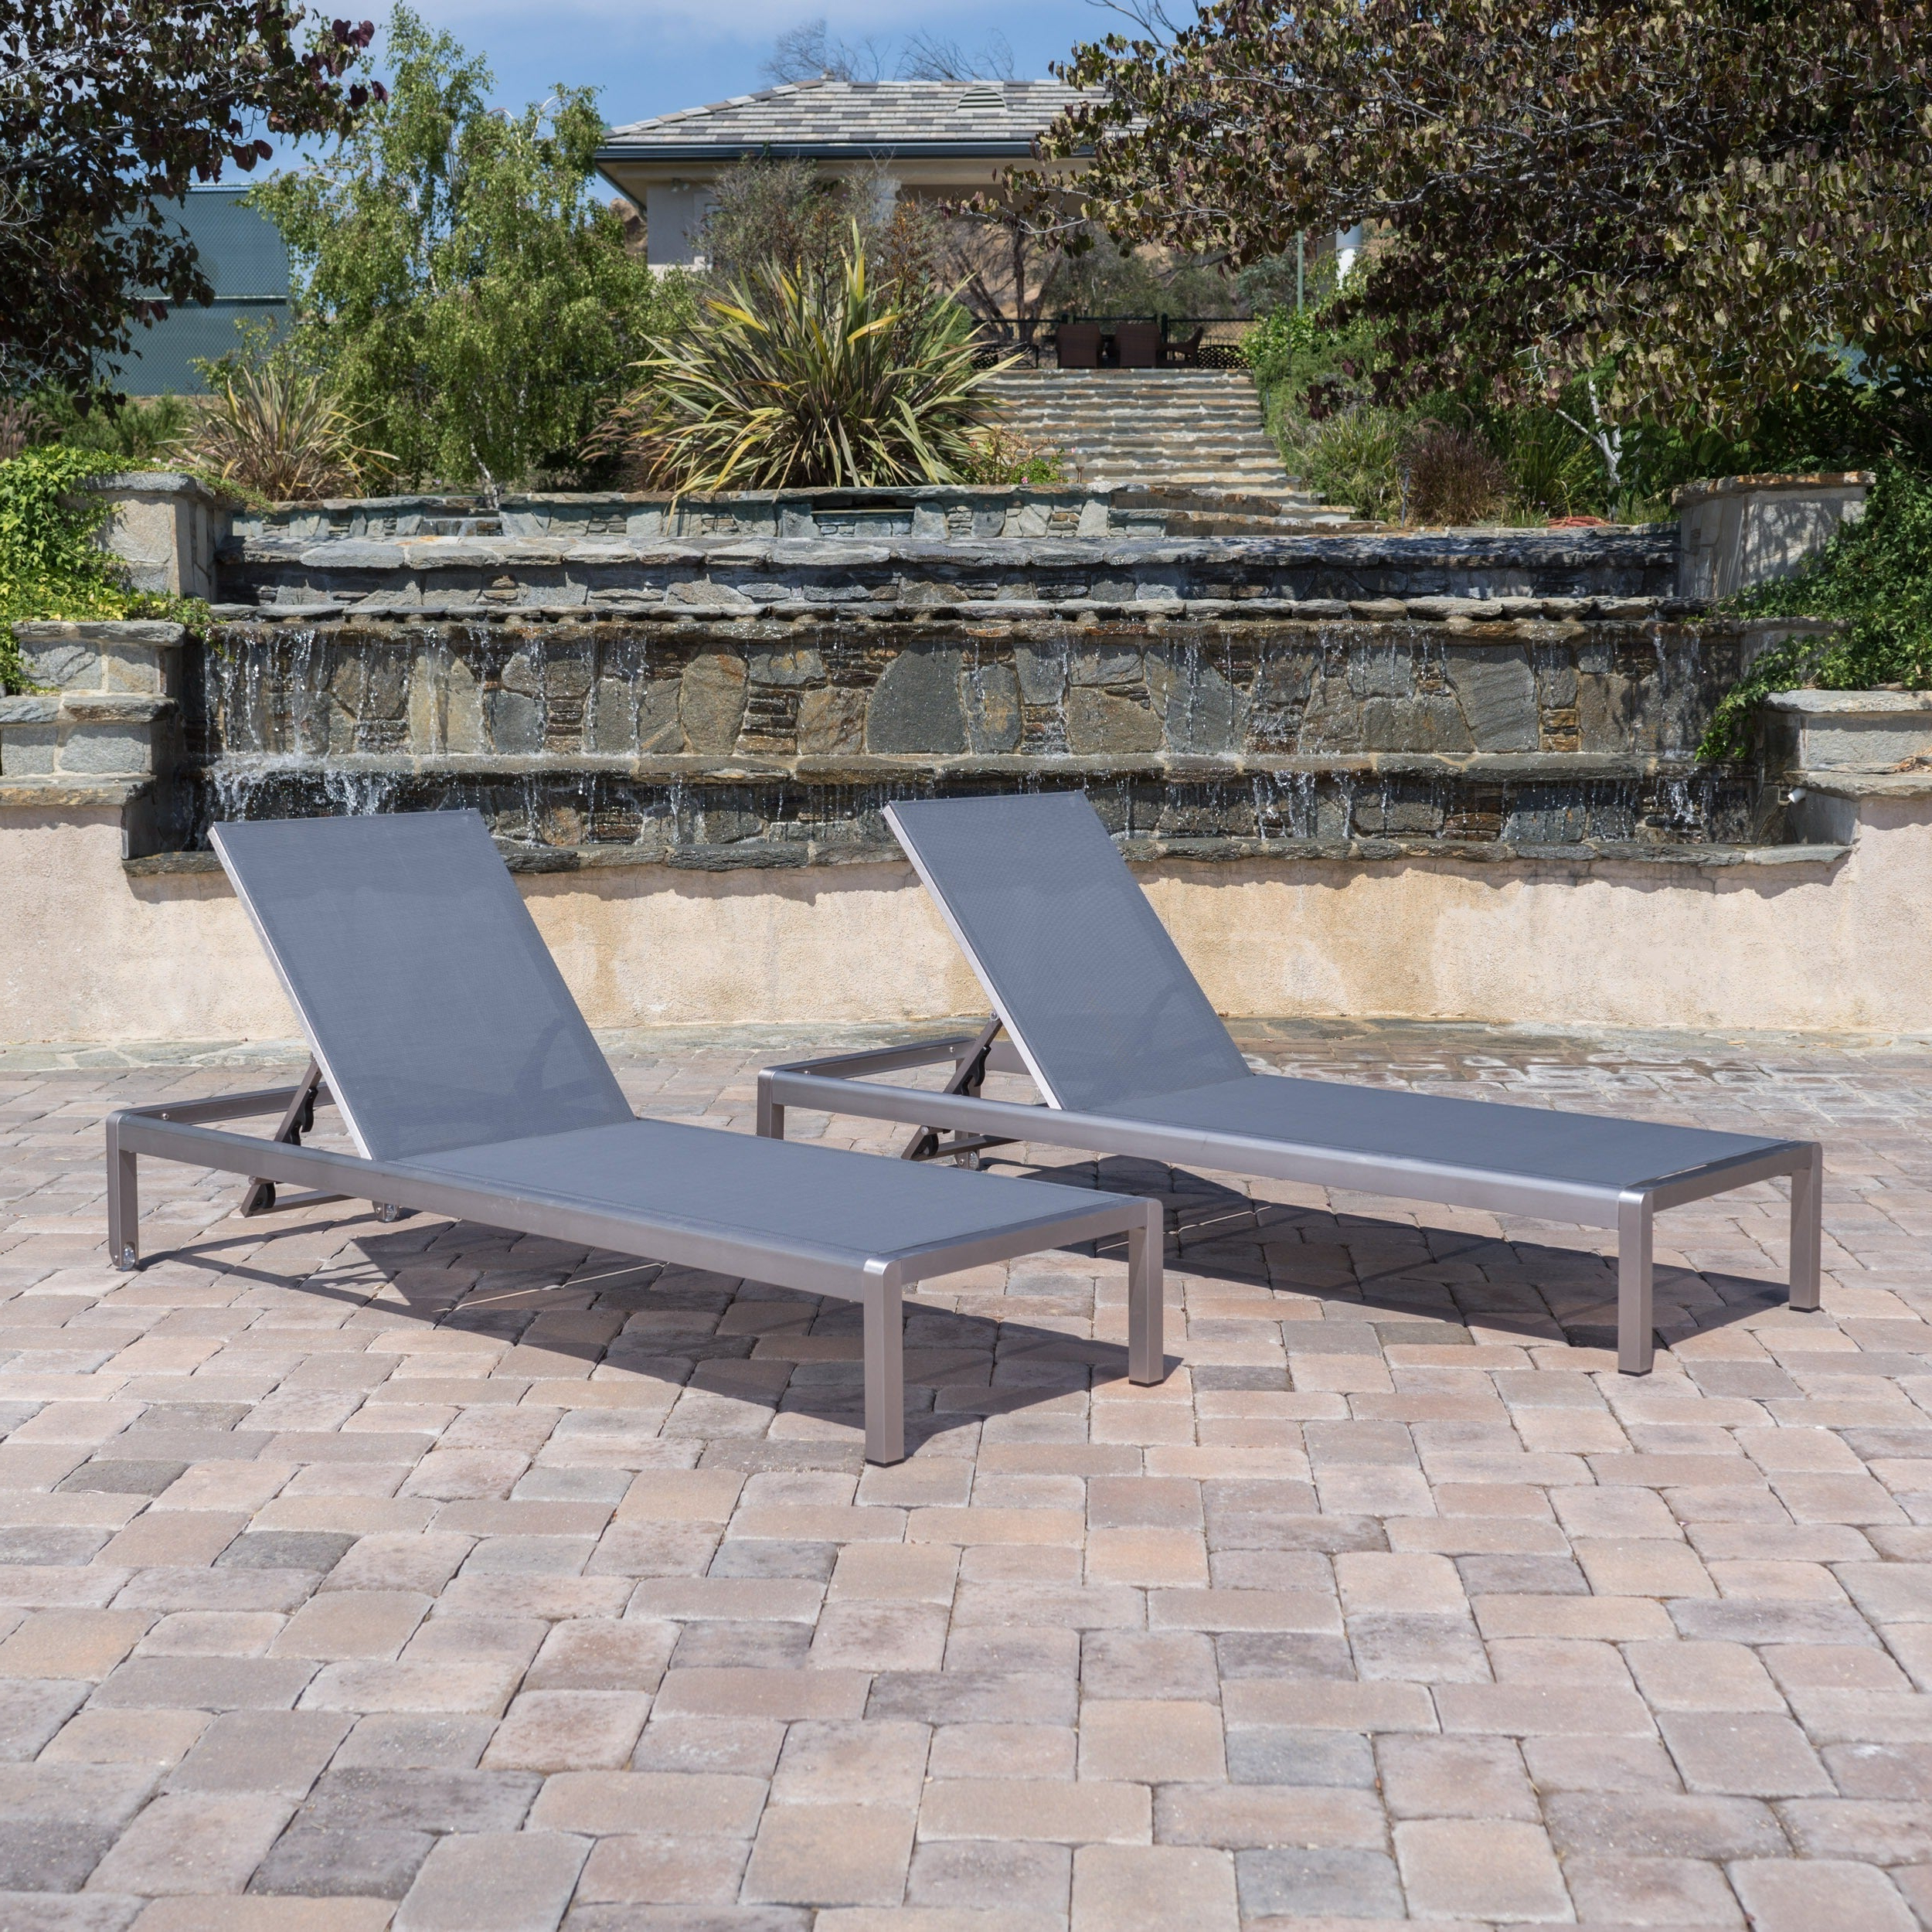 Widely Used Cape Coral Outdoor Aluminum Adjustable Chaise Lounge (Set Of 2) Christopher Knight Home Throughout Cape Coral Outdoor Aluminum Mesh Chaise Lounges (Gallery 3 of 25)